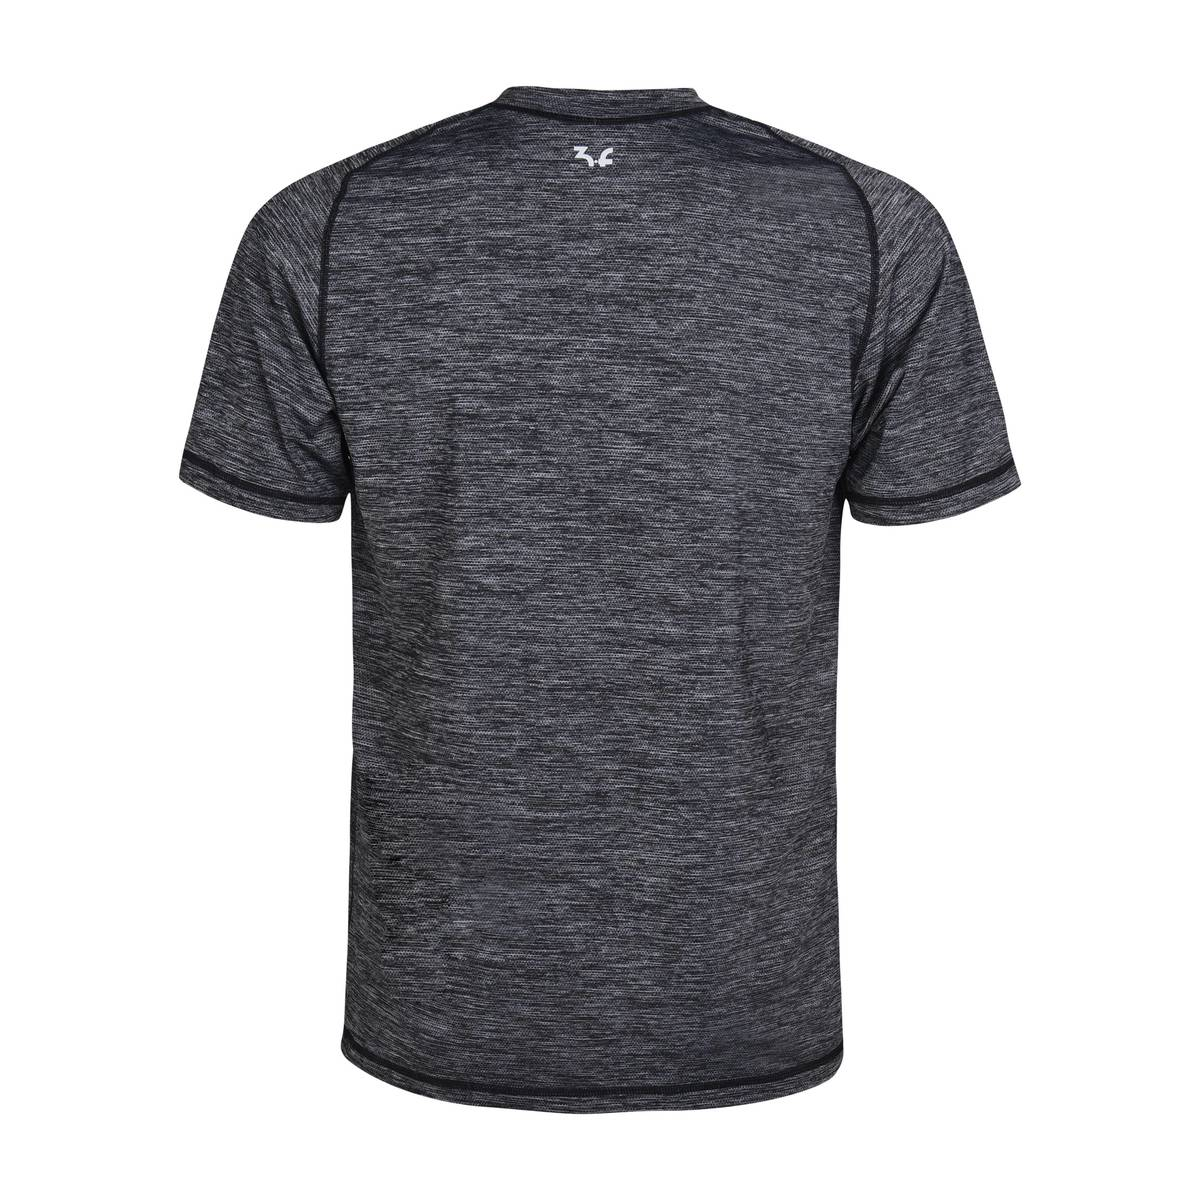 "Men's functional workout t-shirt ""Collin"" - IAM3F"